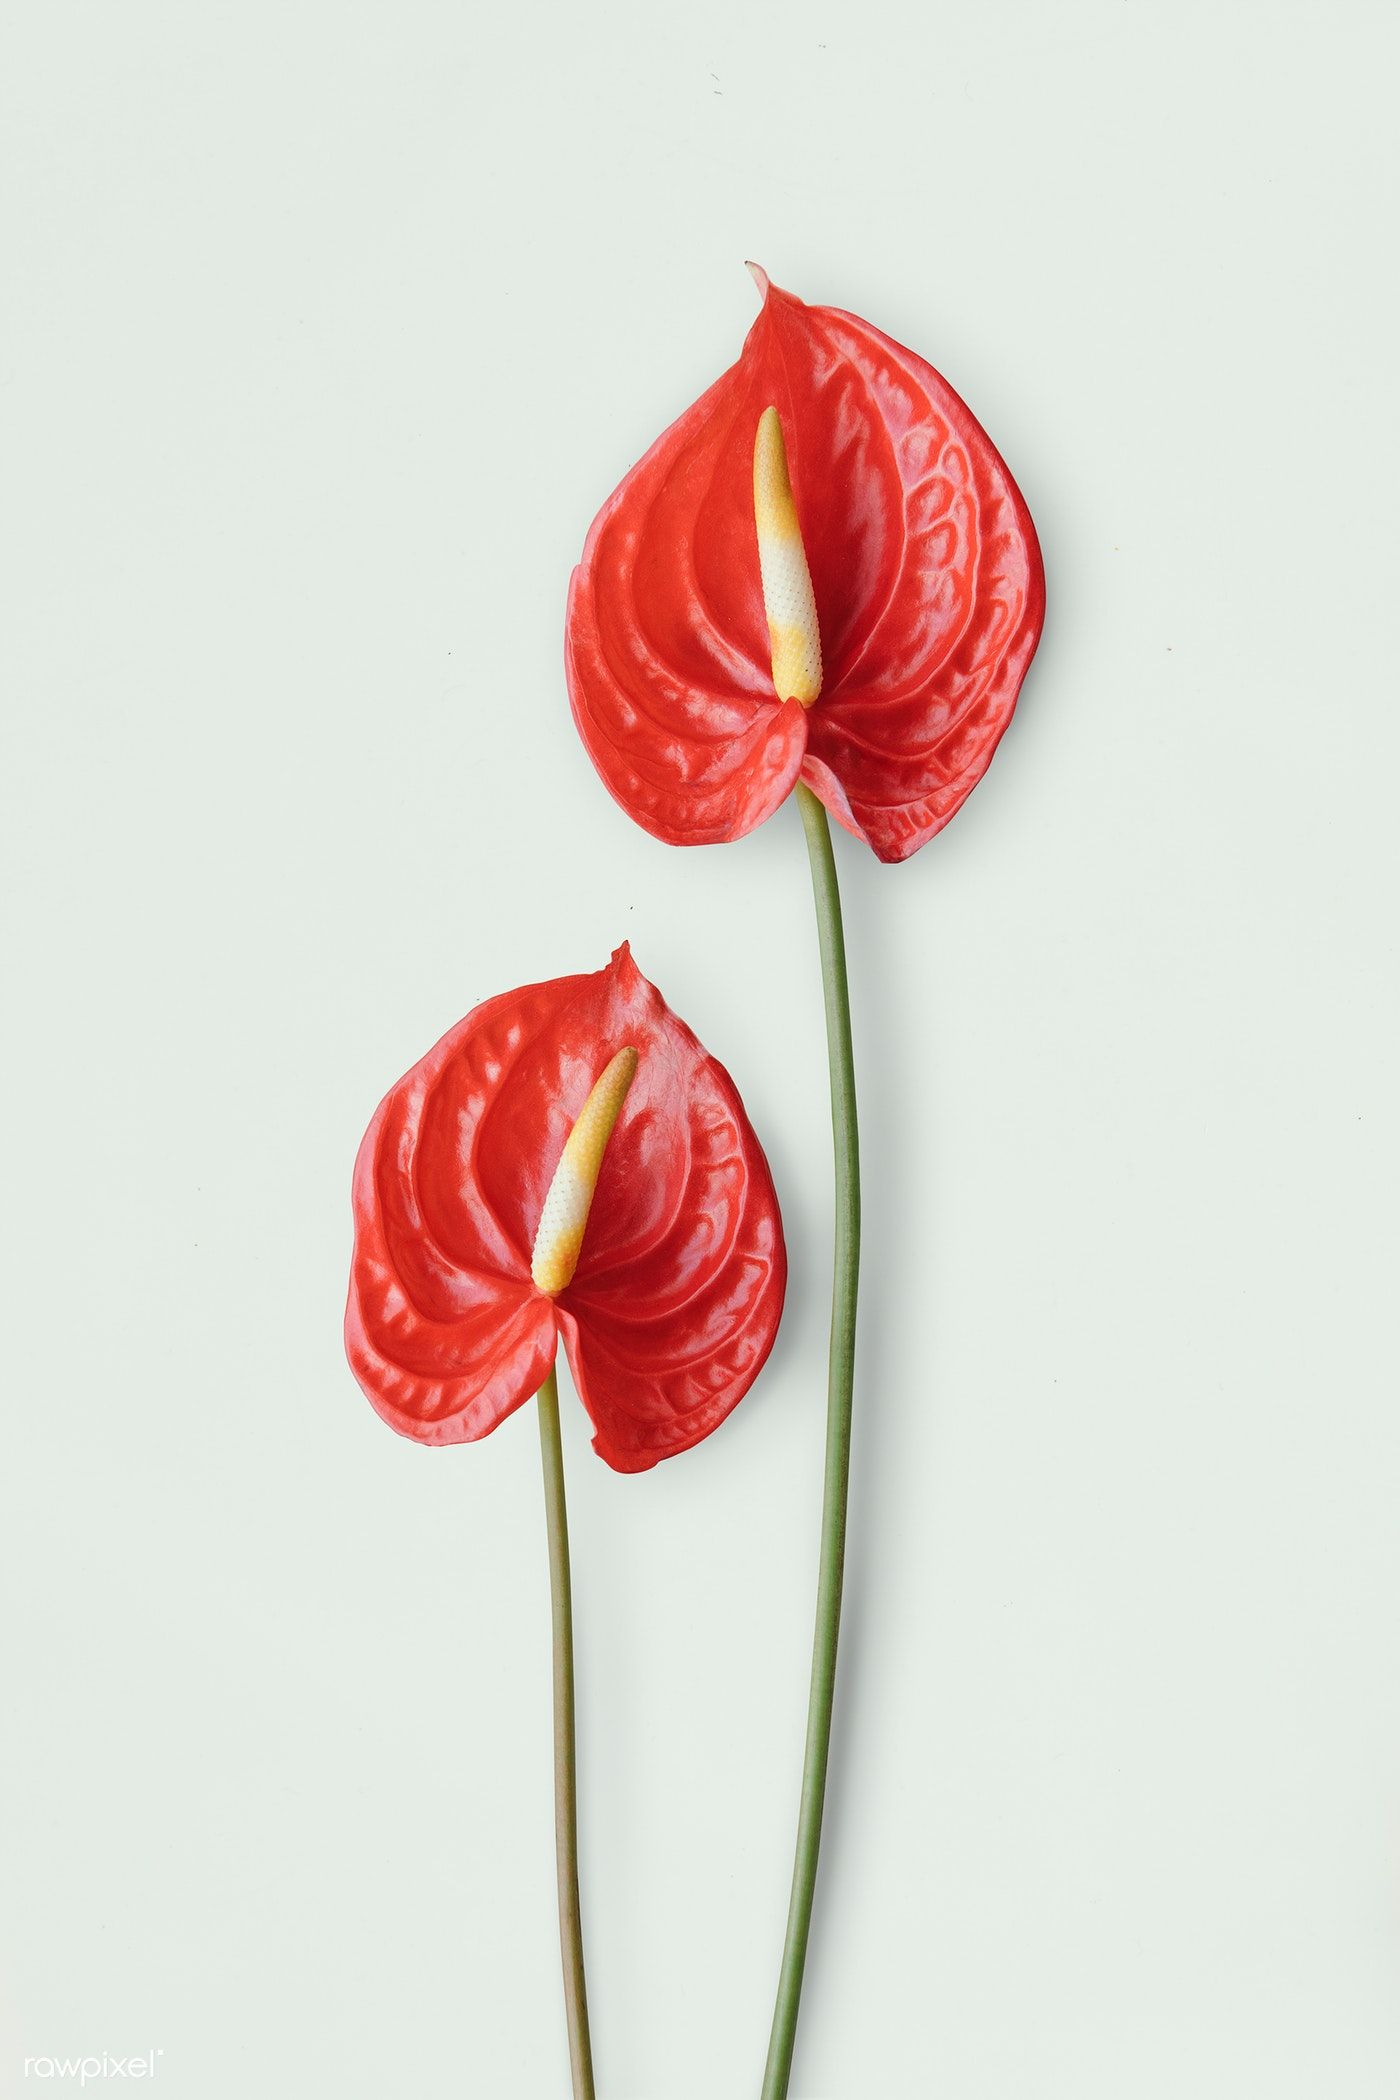 Download Premium Psd Of Red Anthurium On A Light Gray Background 1210107 Anthurium Anthurium Flower Watercolor Pattern Background